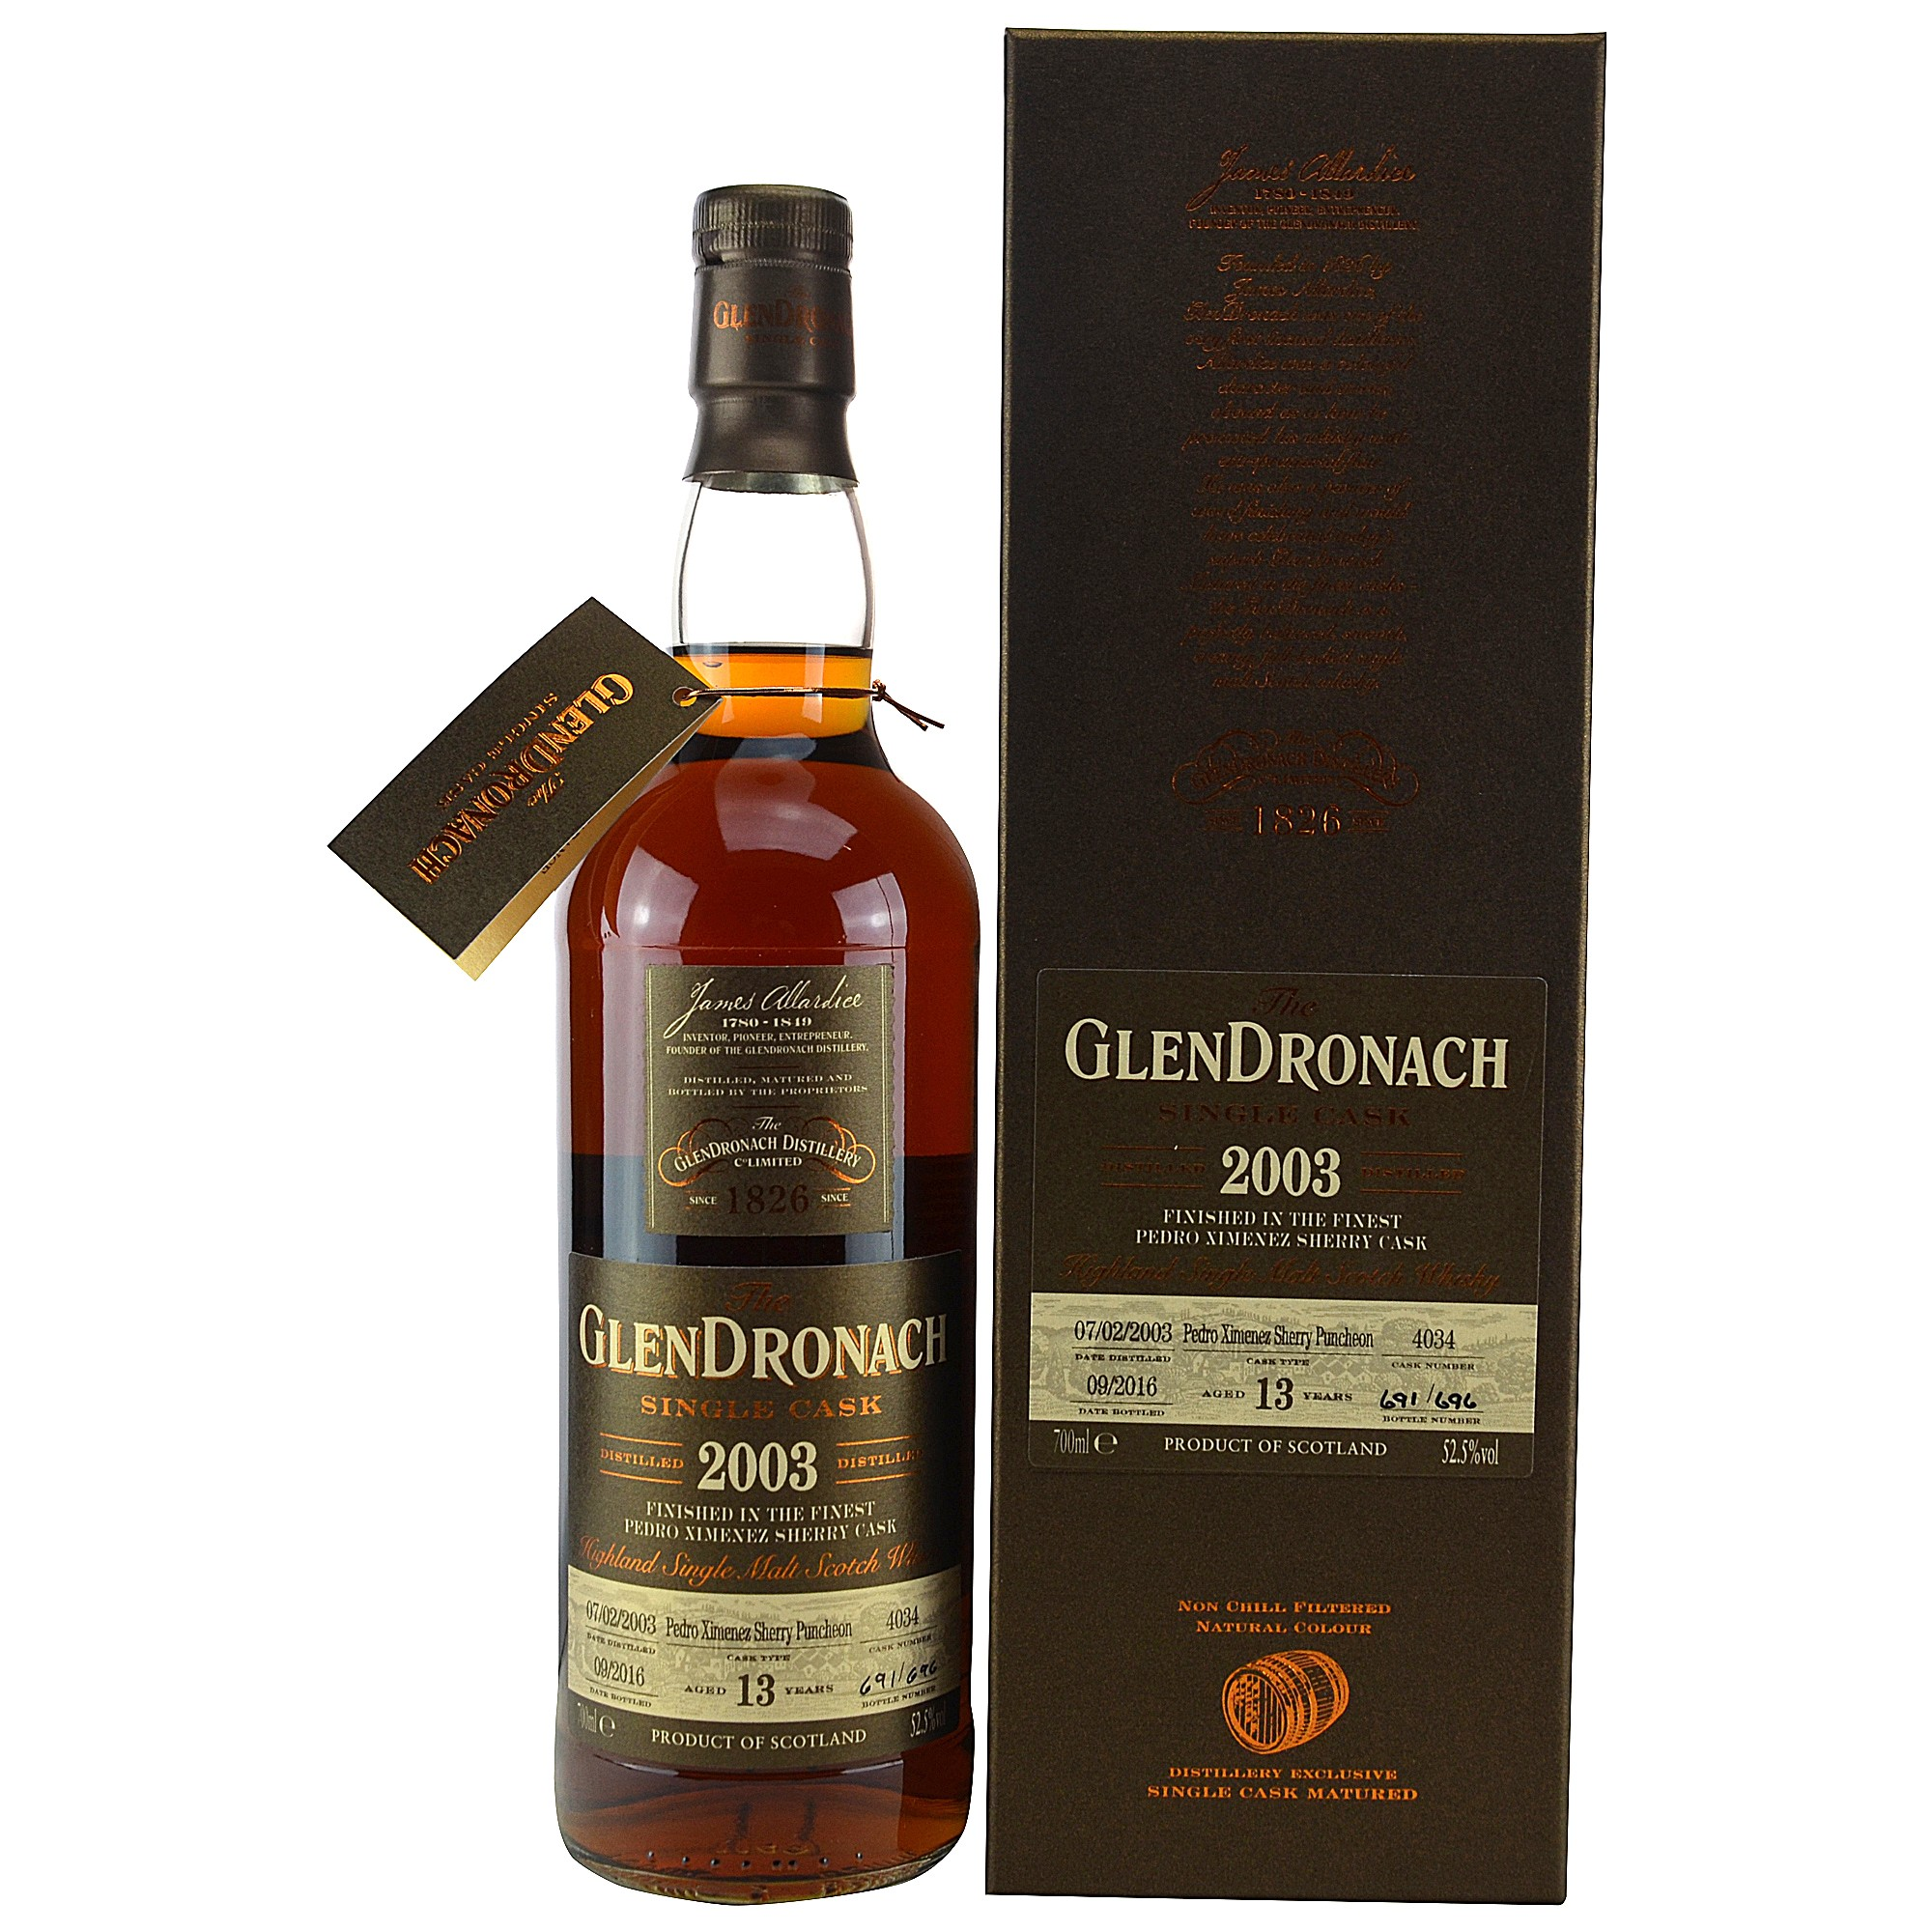 Glendronach 2003/2016 Single Cask No. 4034 PX Sherry Puncheon Batch # 14